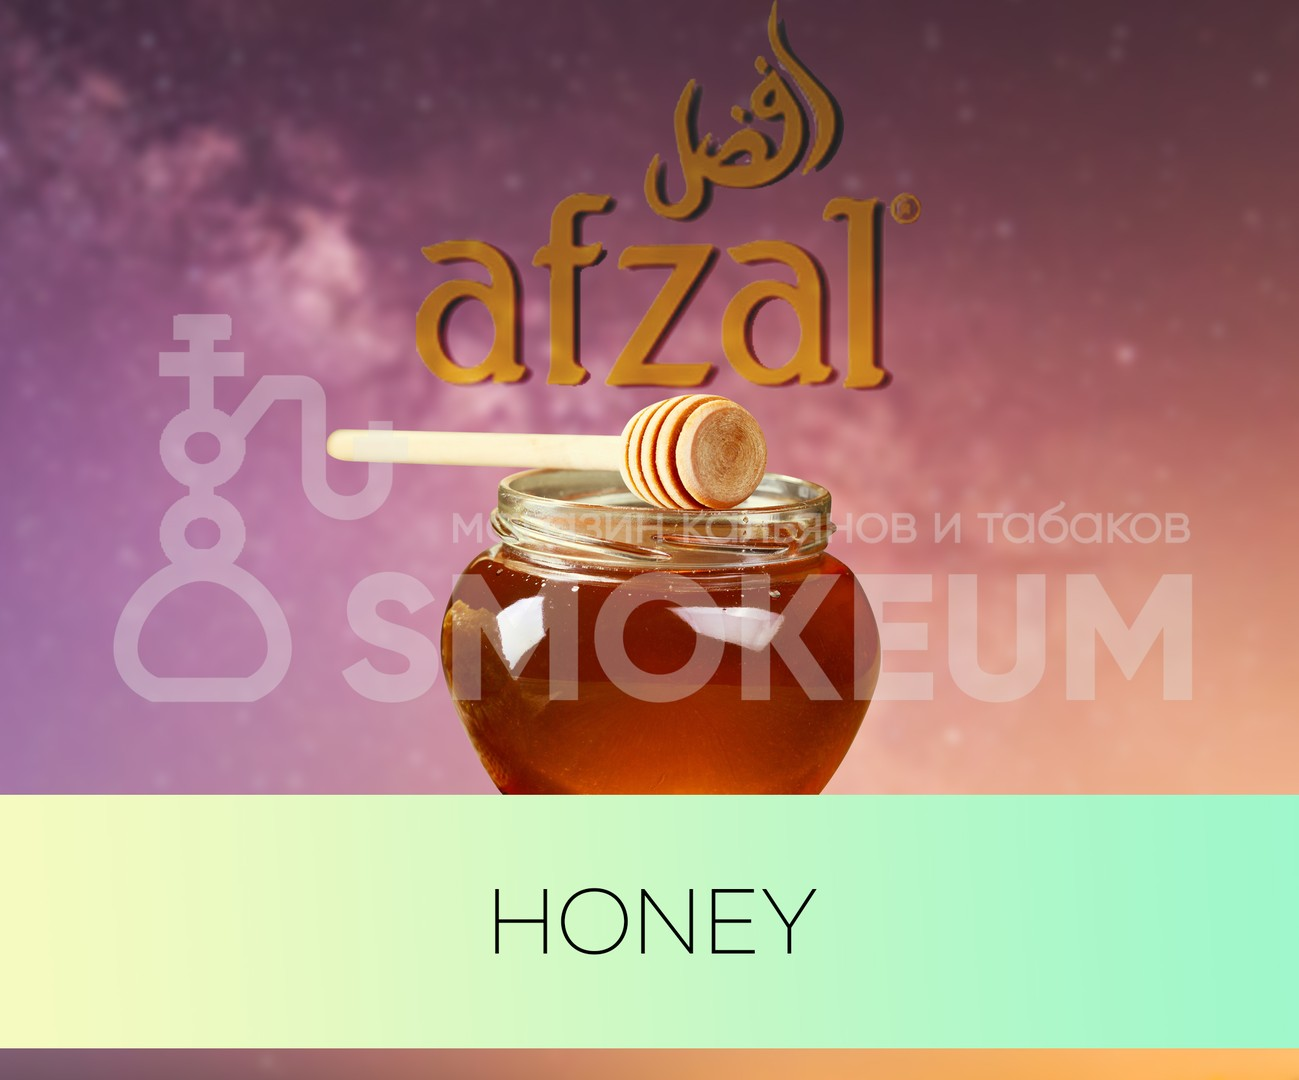 Табак Afzal - Honey (Мёд) 50 гр